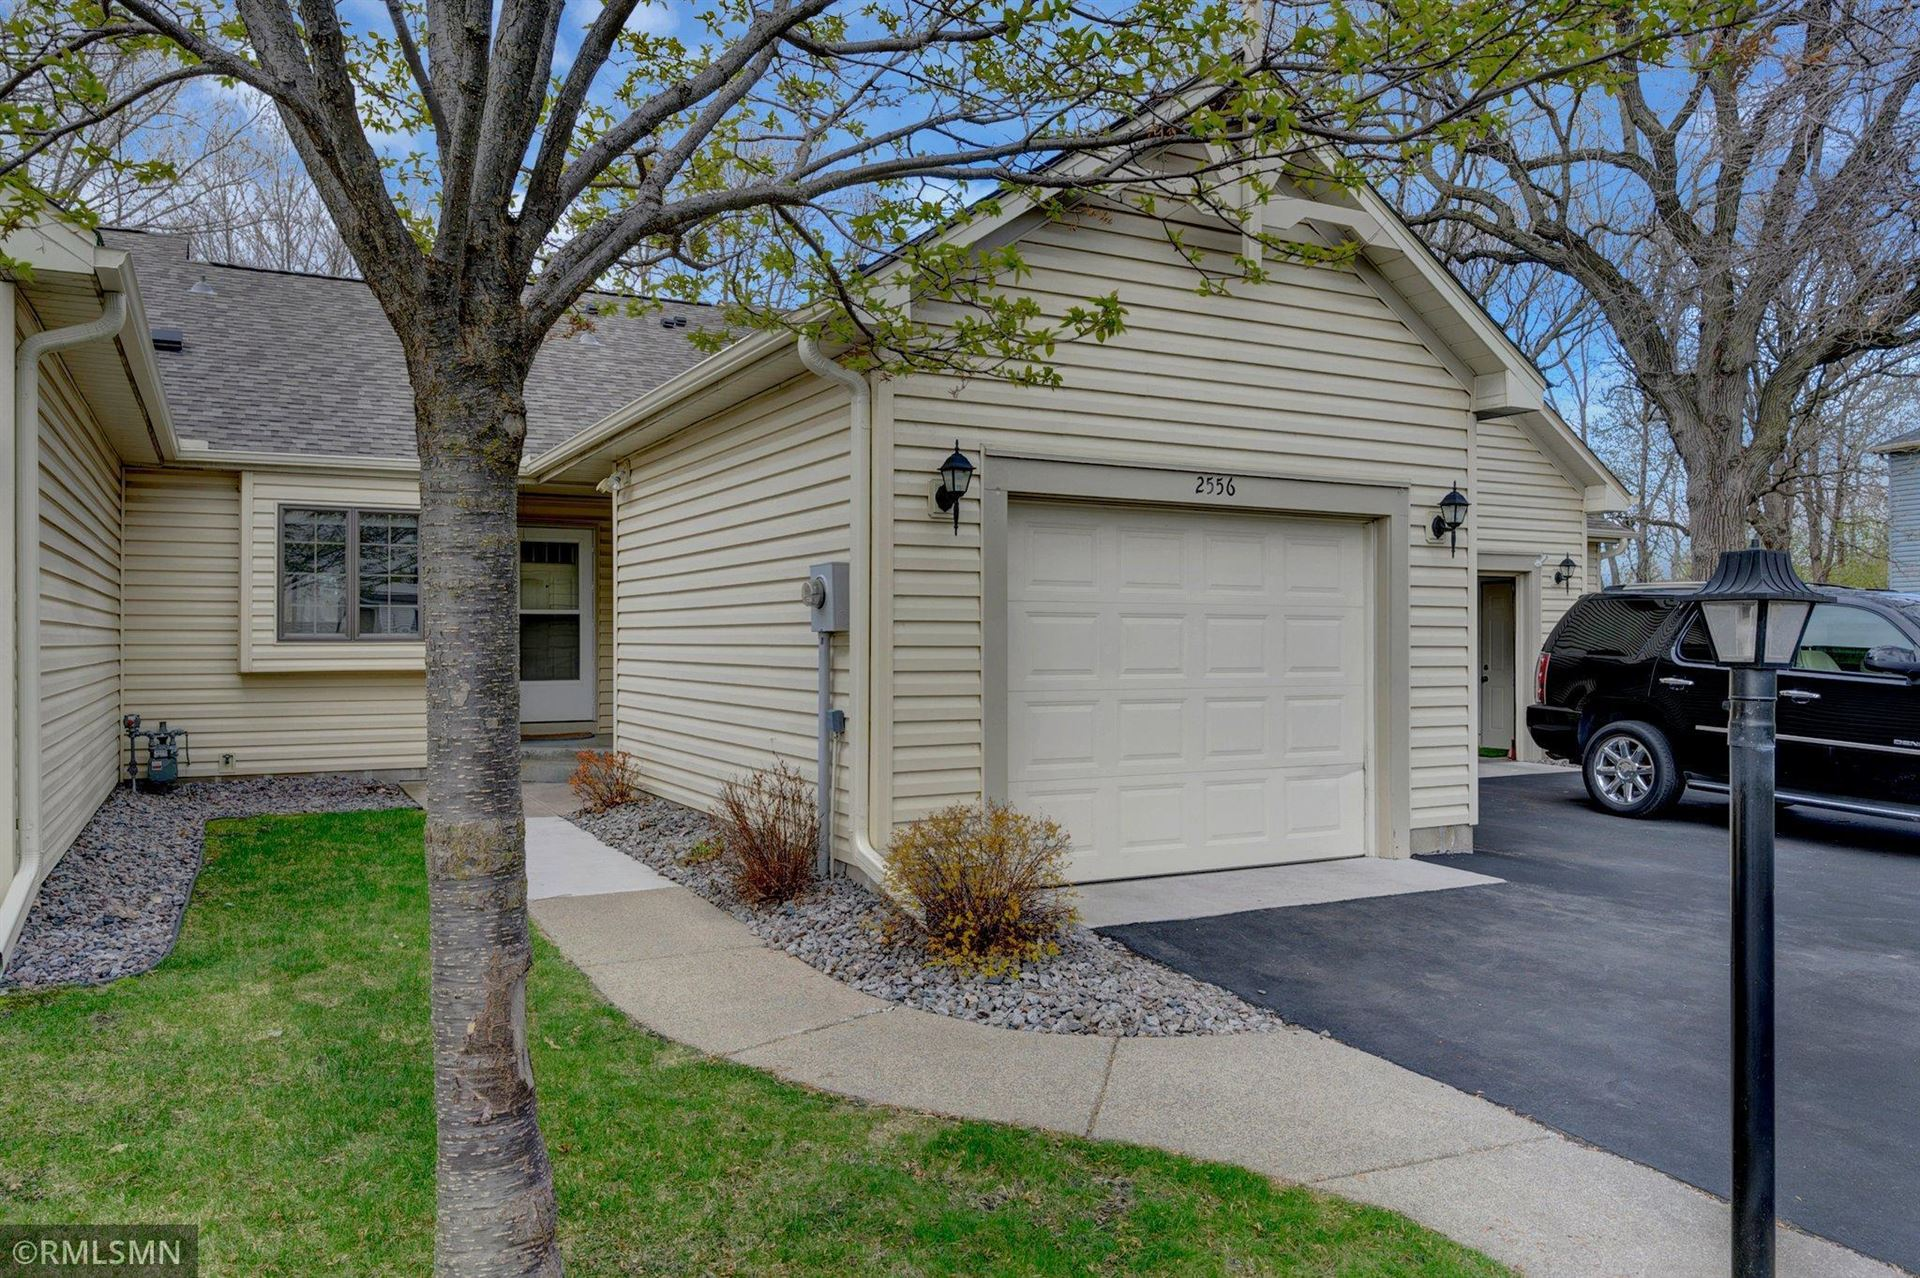 2556 Moundsview Drive #52, Mounds View, MN 55112 - MLS#: 5744292